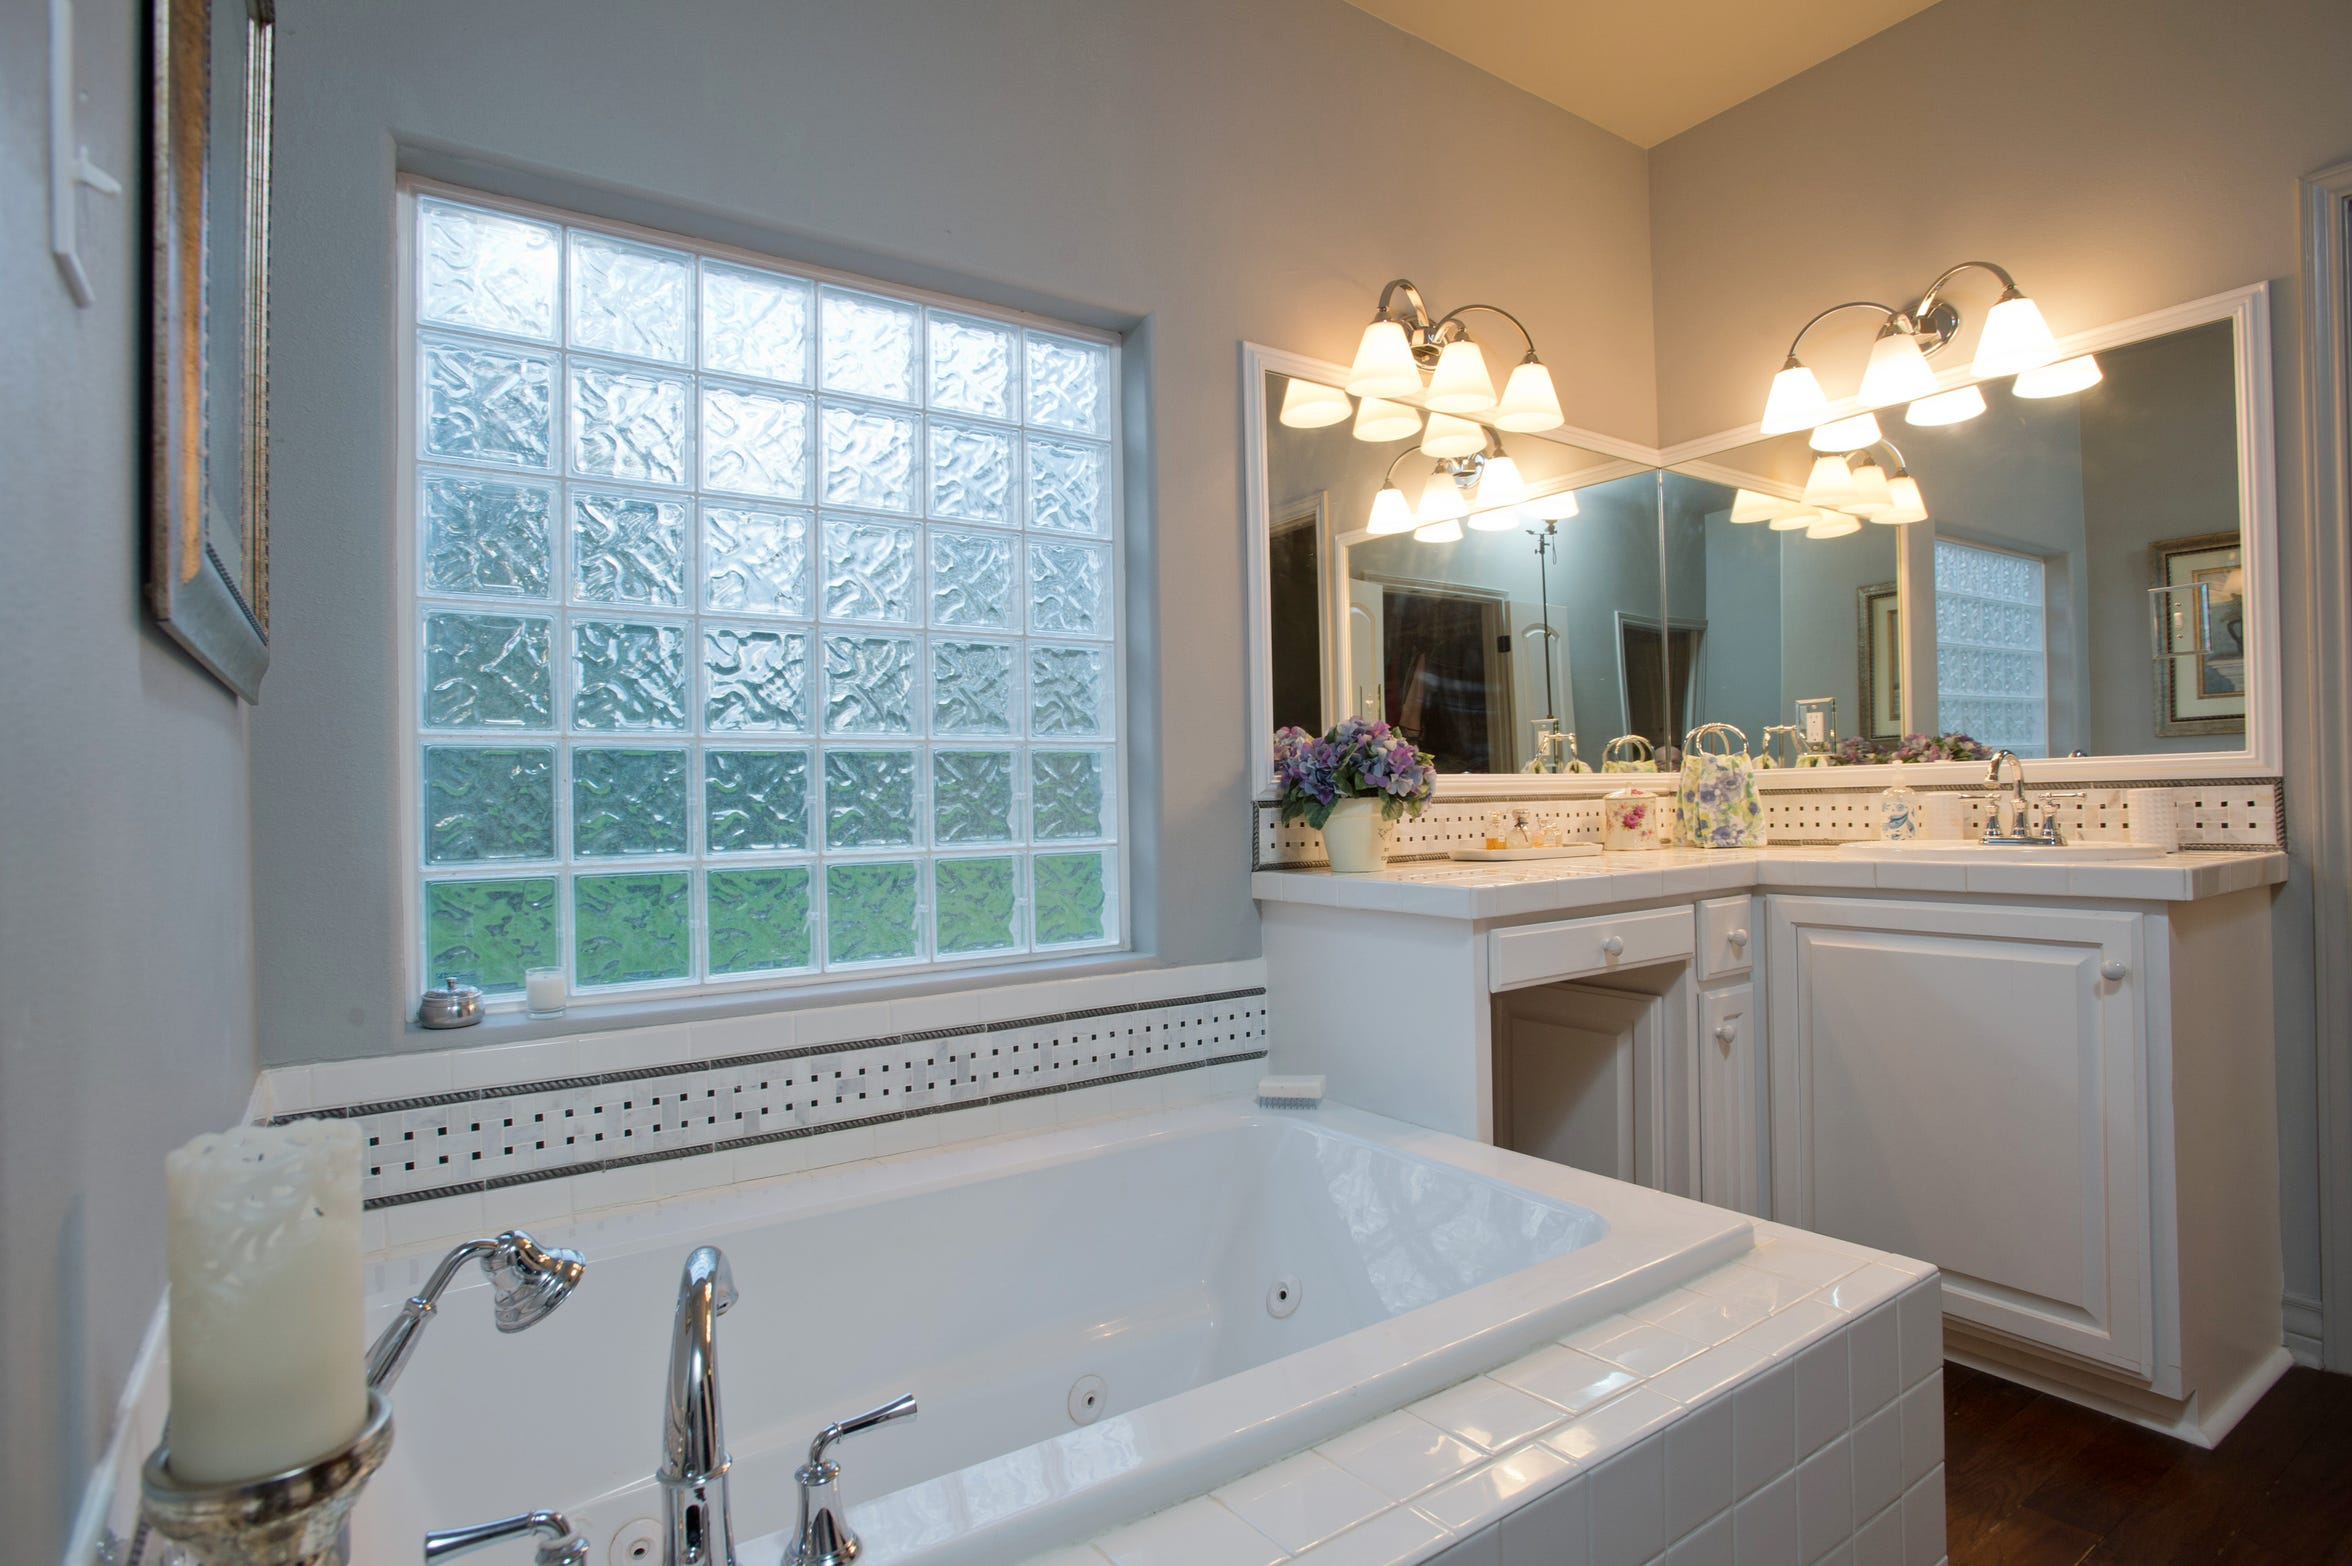 The master bath in the second living suite is fully equipped with a whirlpool garden tub with a glass brick window